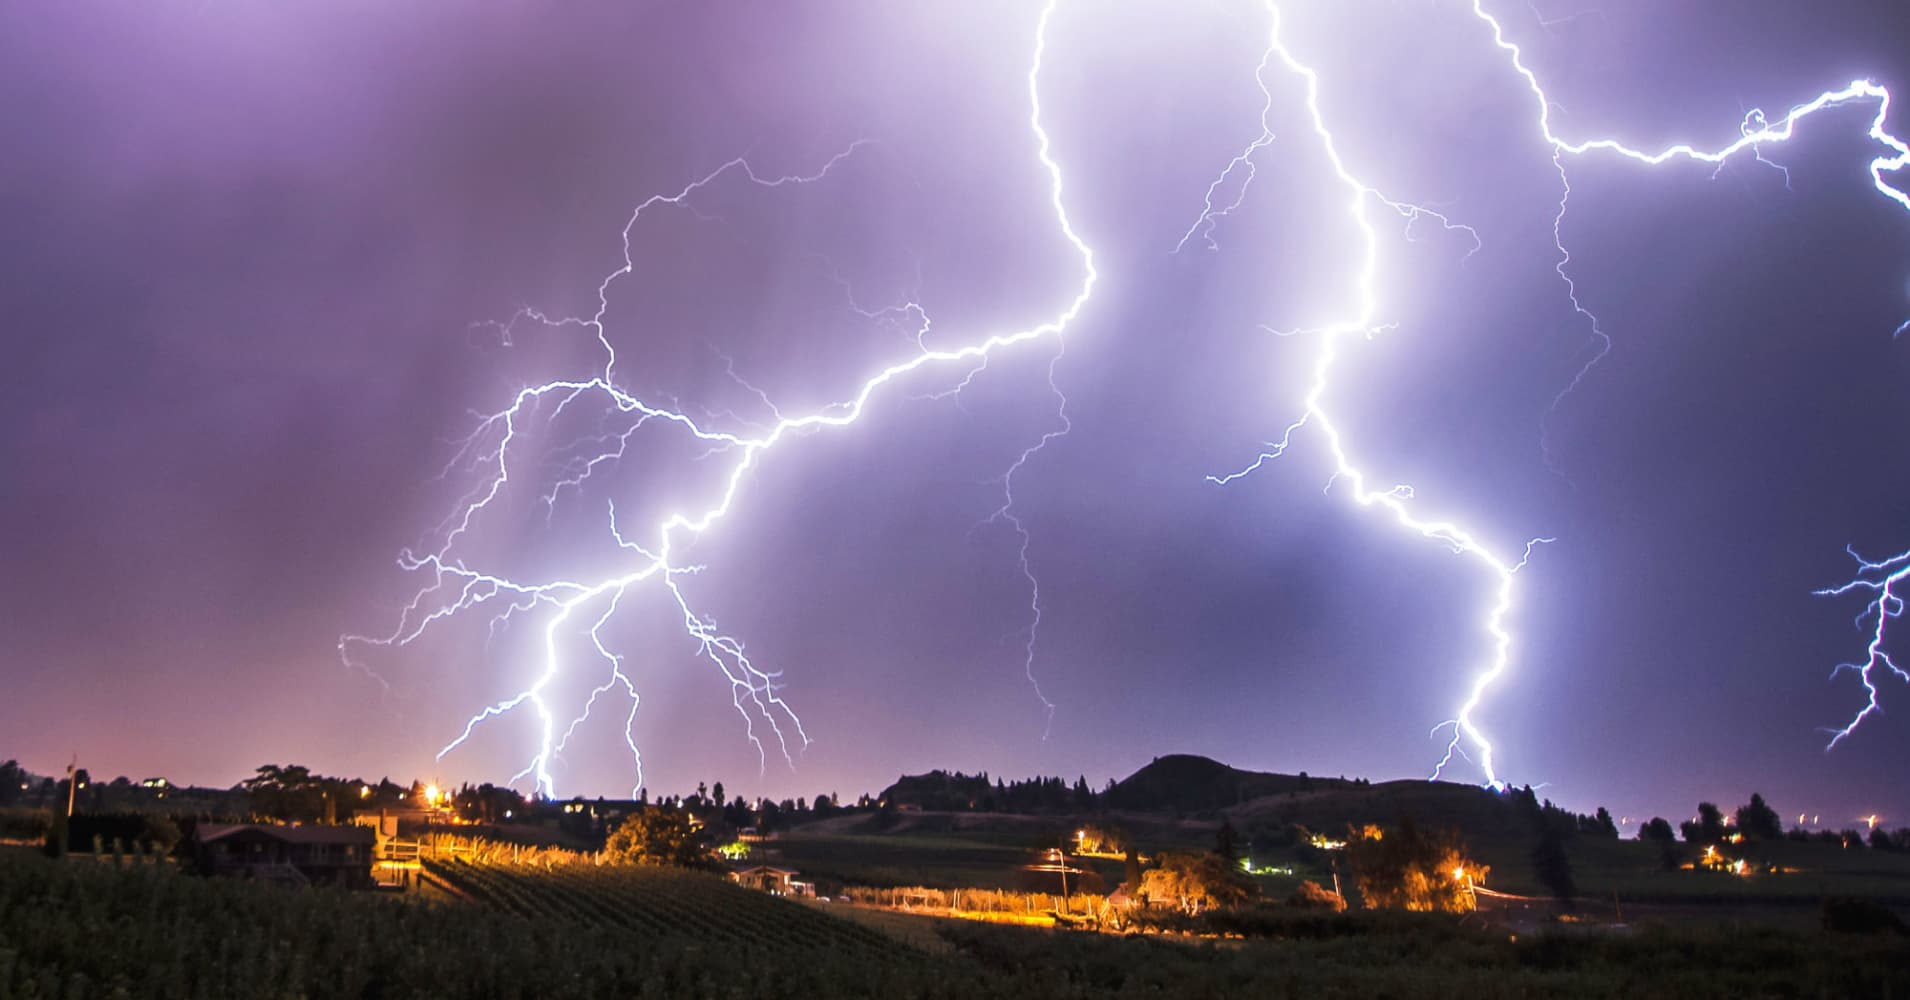 Jefferies strategist says it's time to bet on a market storm ahead, here's why